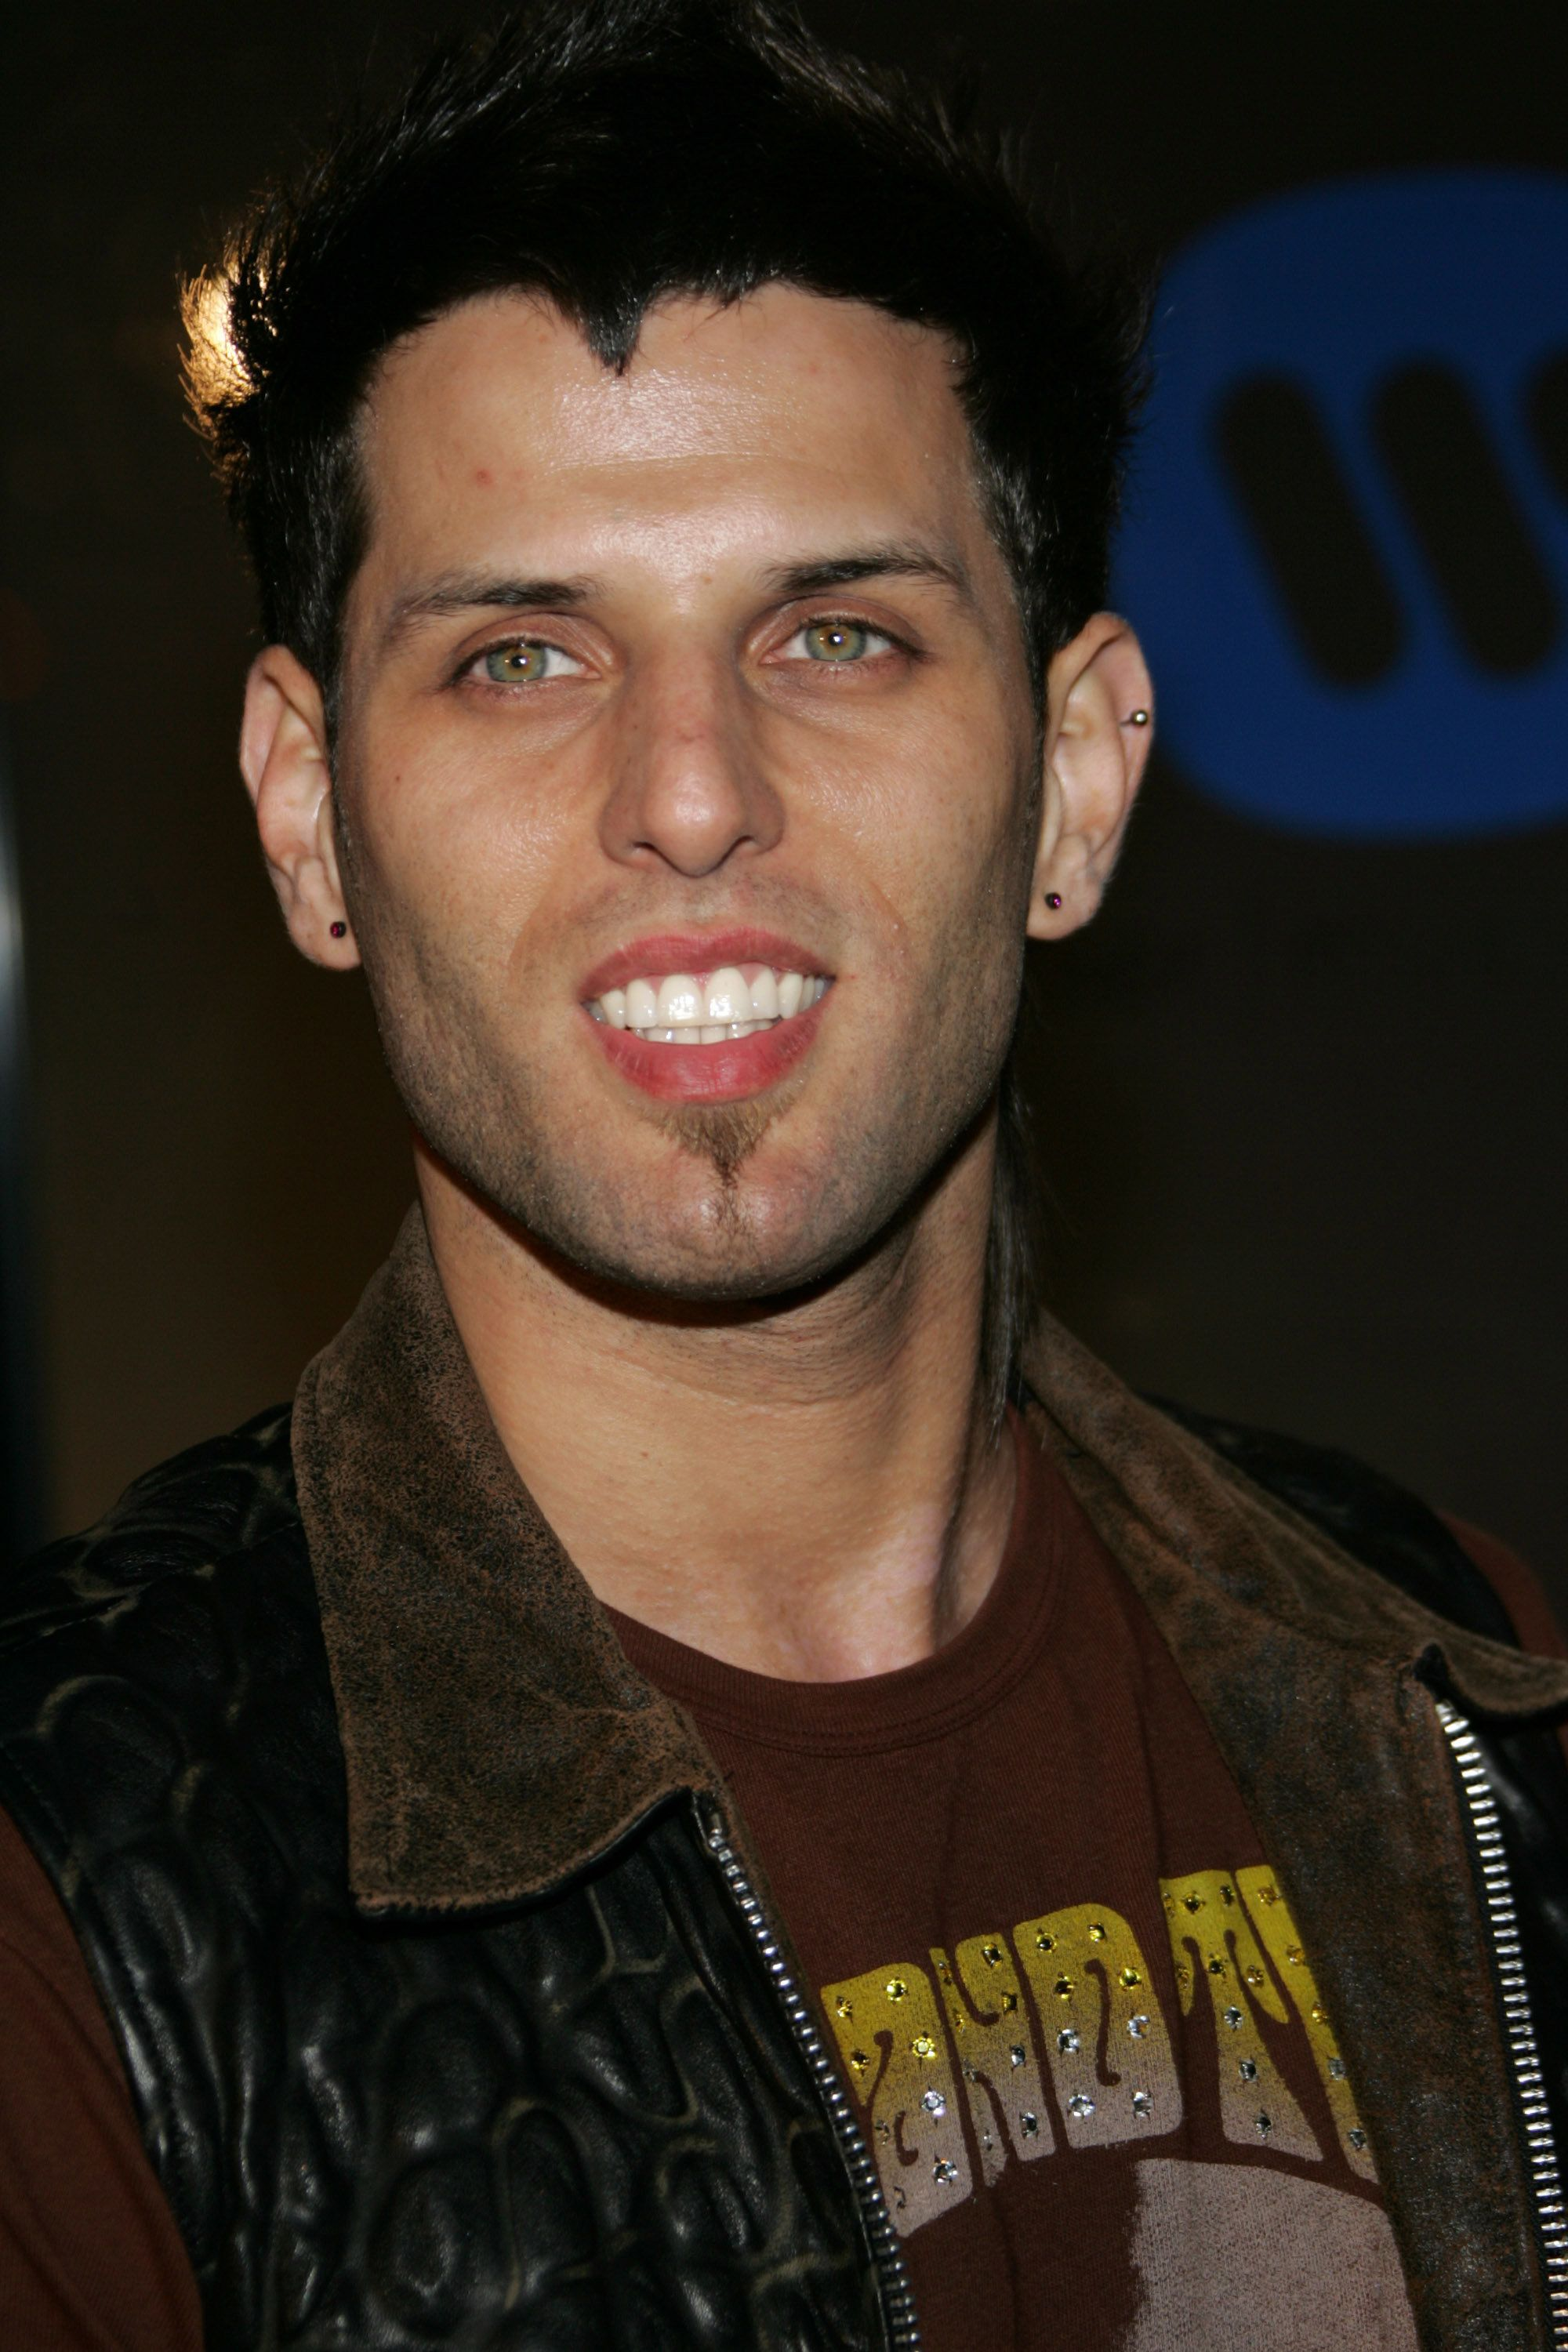 Devin Lima during 2006 Warner Music Group GRAMMY Arrivals in Los Angeles, California, United States. (Photo by Michael Bezjian/WireImage)